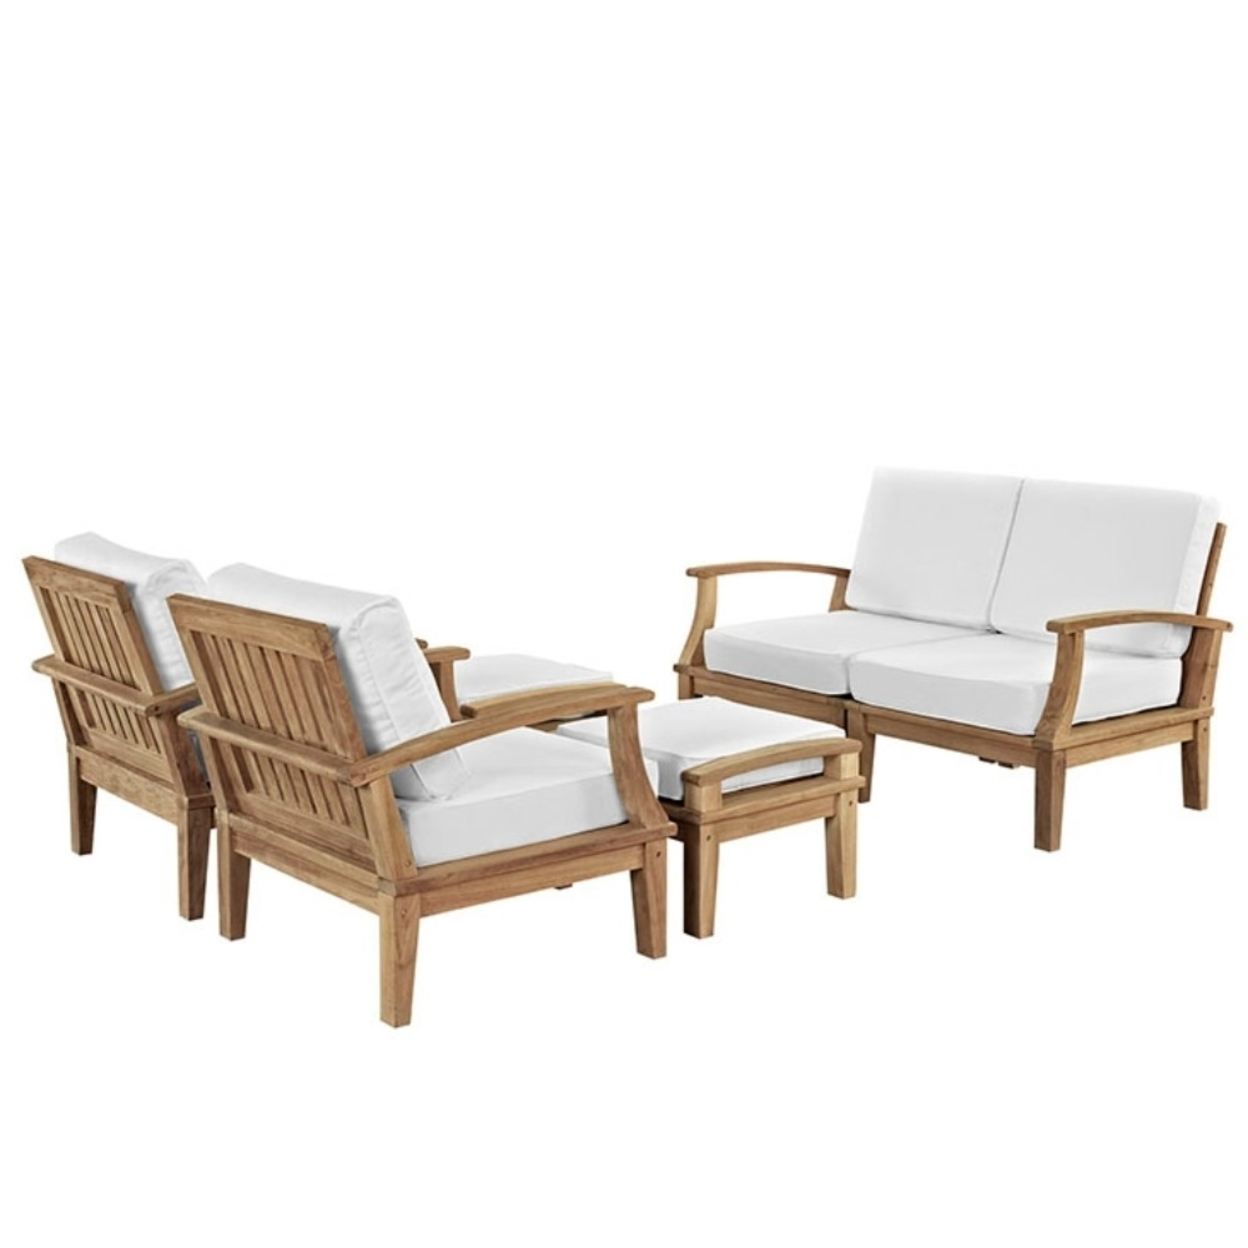 Marina 6 Piece Outdoor Patio Teak Sofa Set, White 5a0c04c8e224616d503ae45b